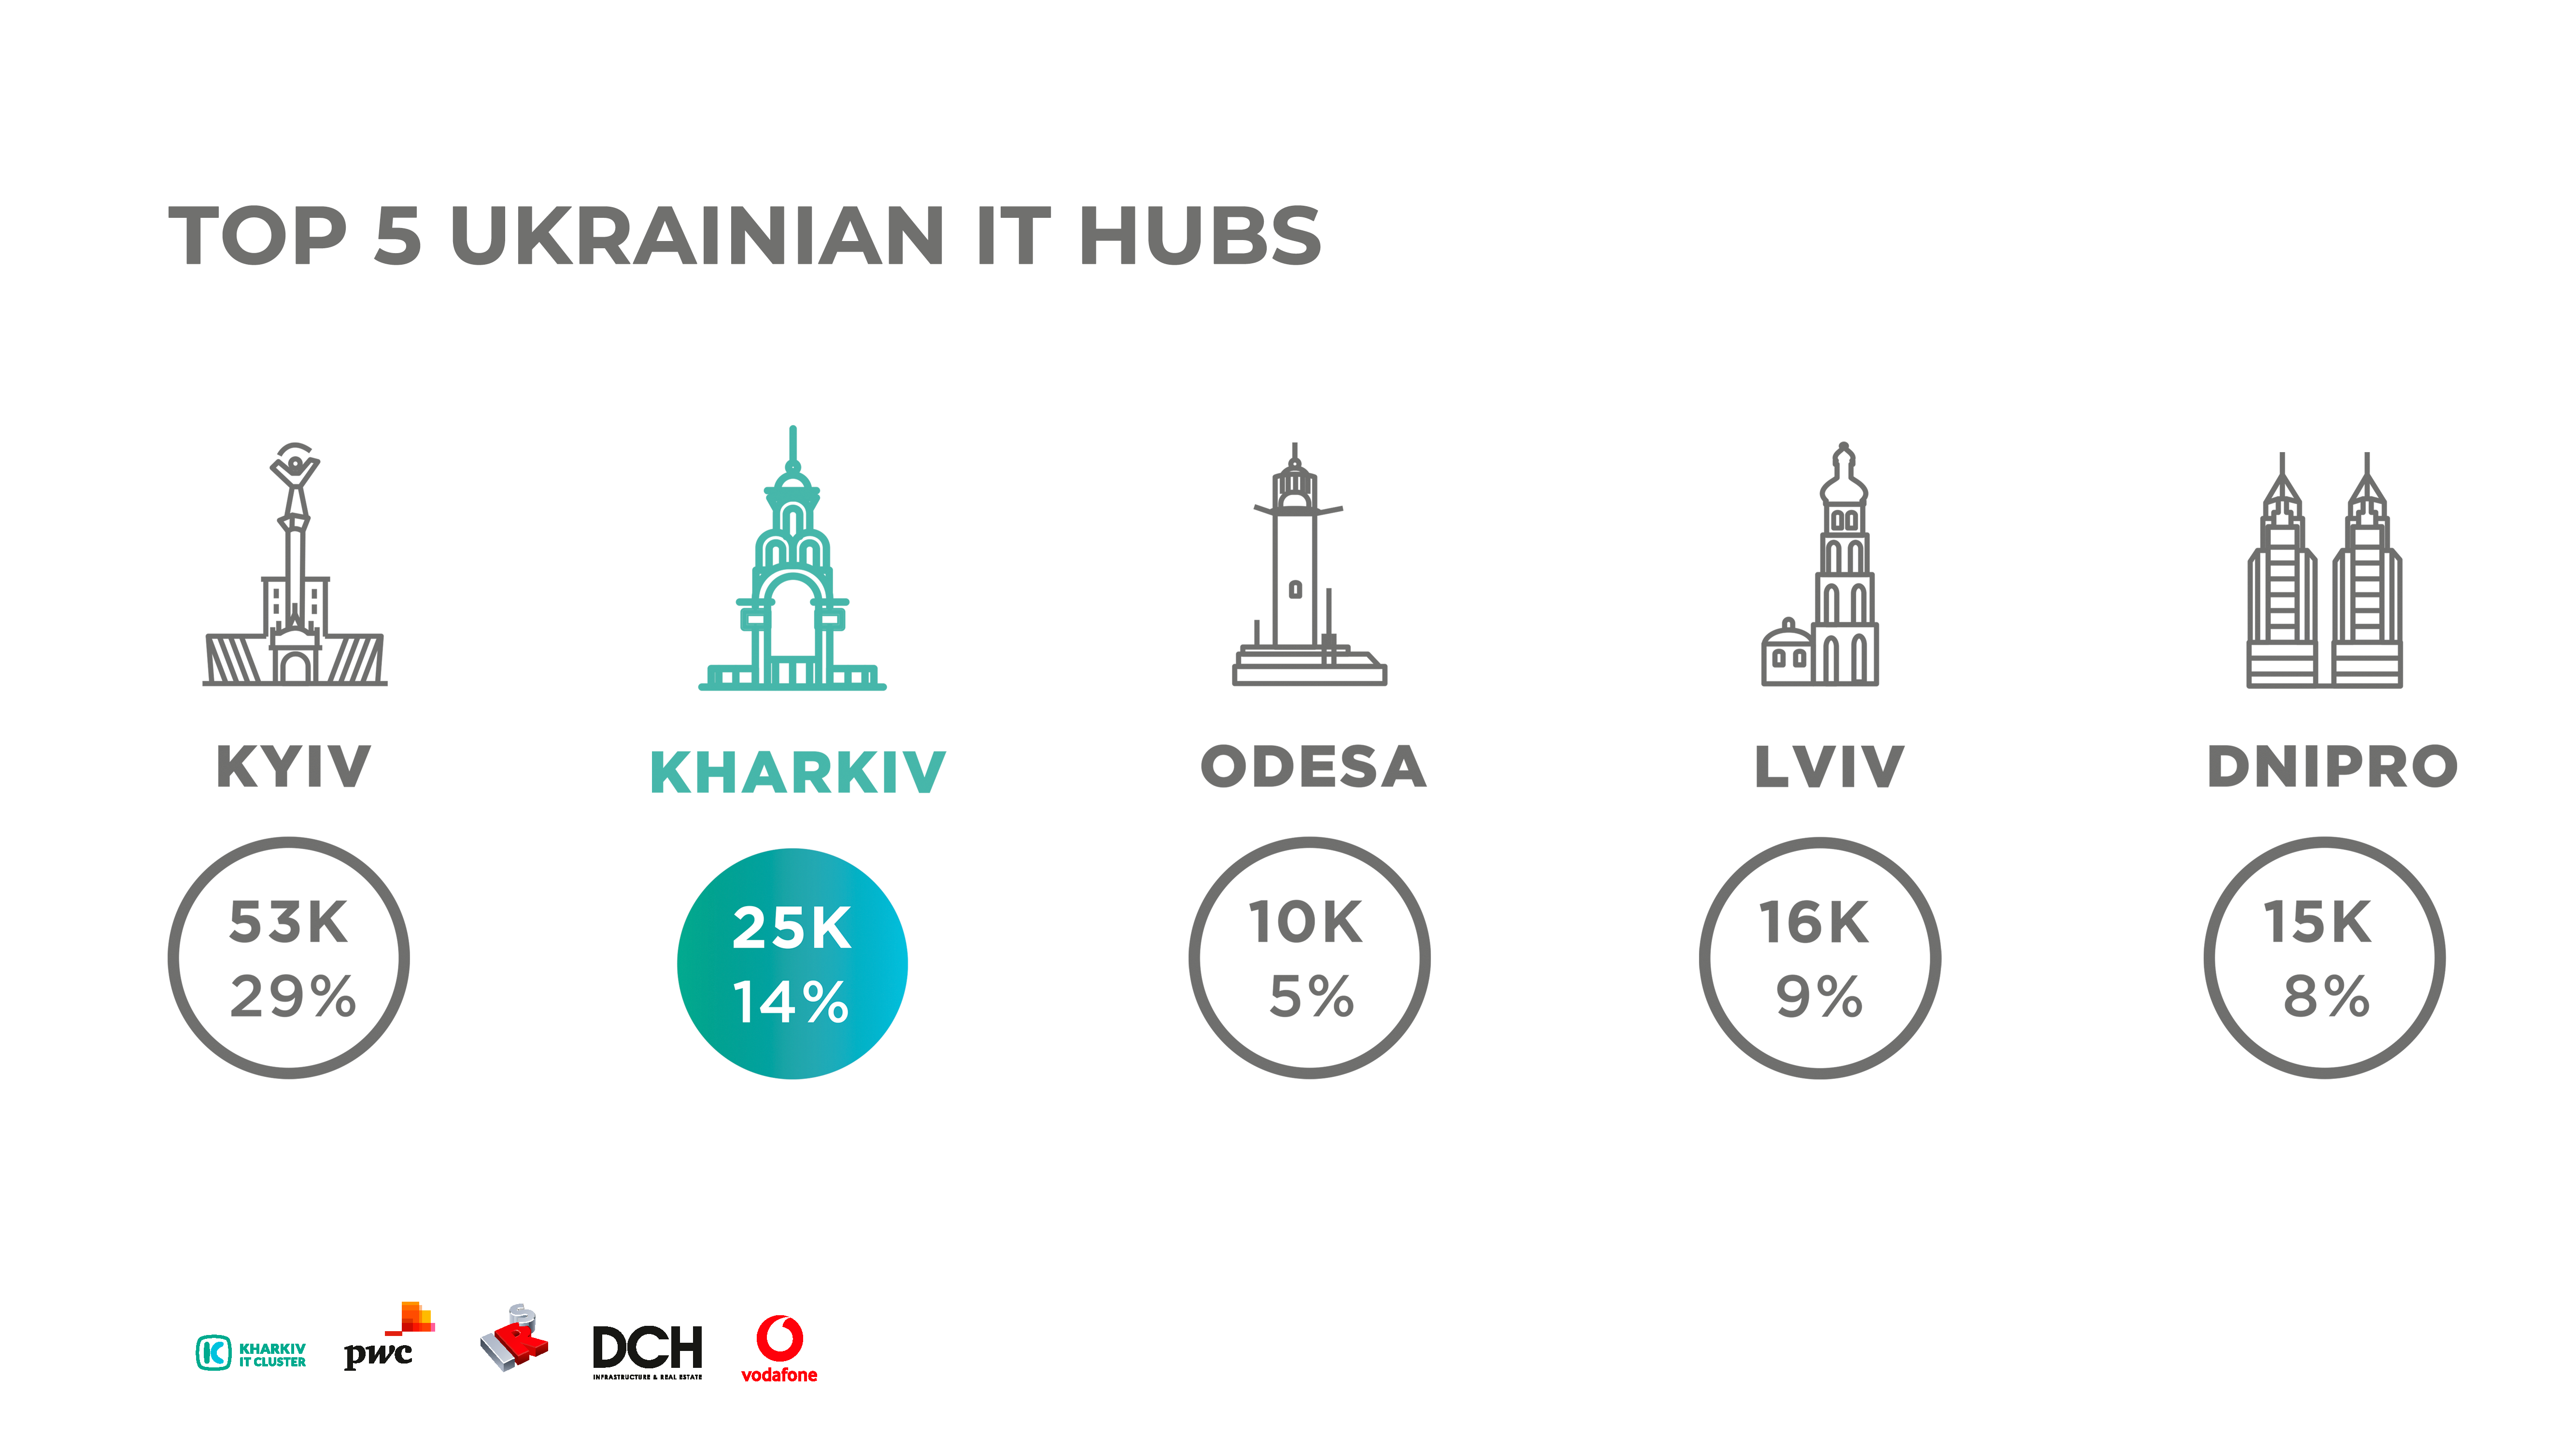 eng Kharkiv IT Research: 25,000 IT Specialists, over 450 Successfully Working Companies and 5 Billion Hryvnias Taxes in the Budget of Ukraine